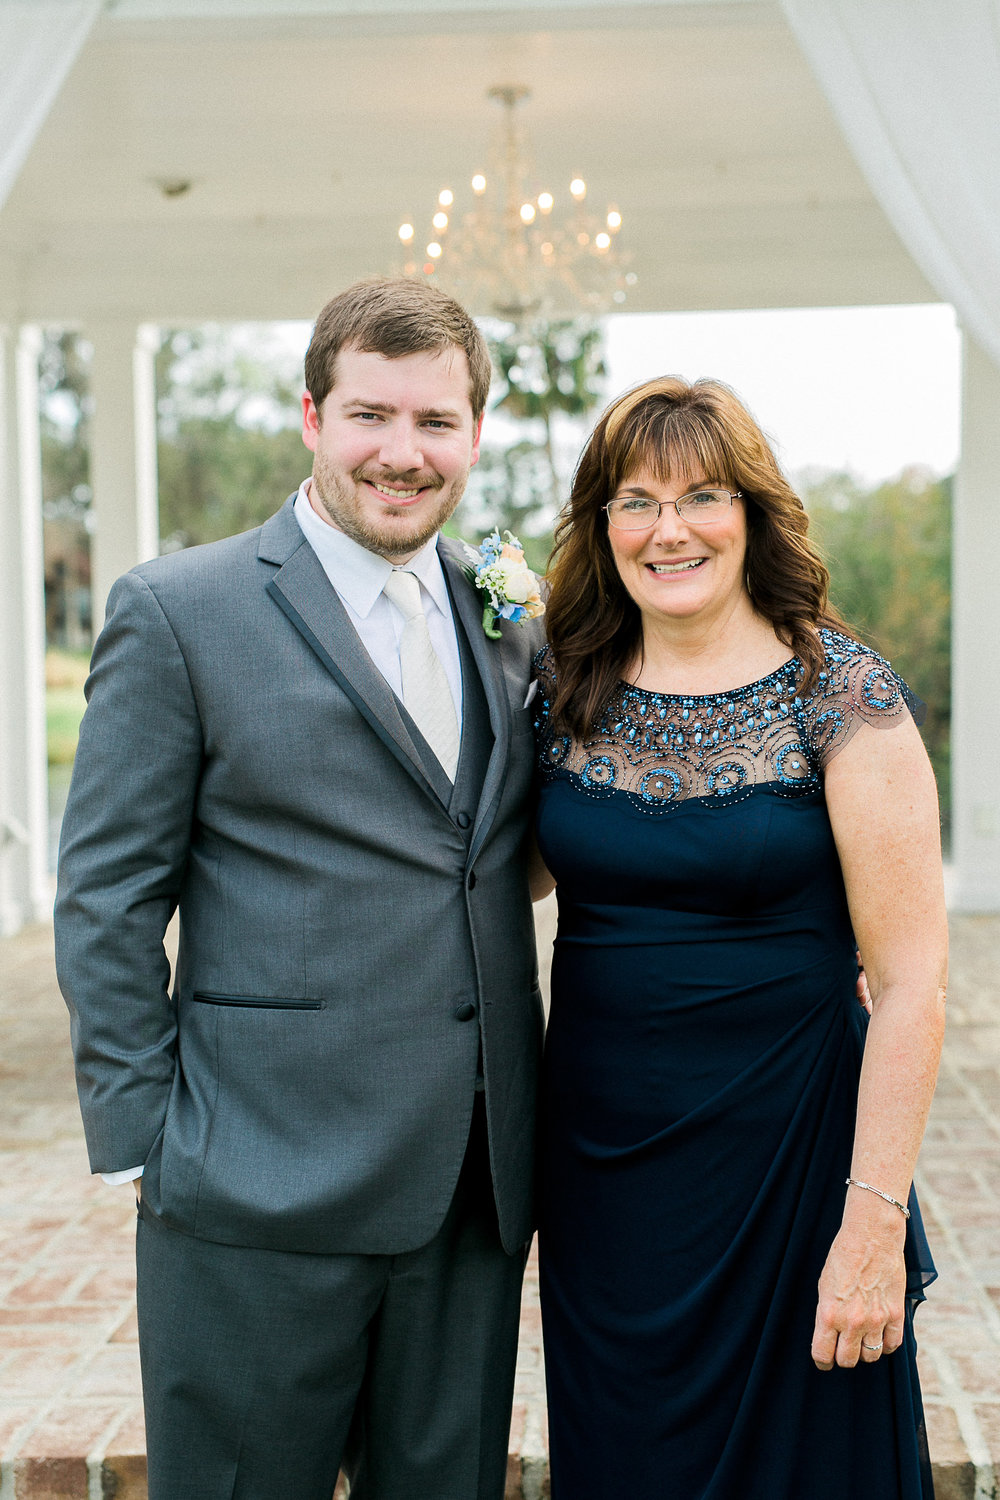 Owner Patty Rogers and Her Son Kyle